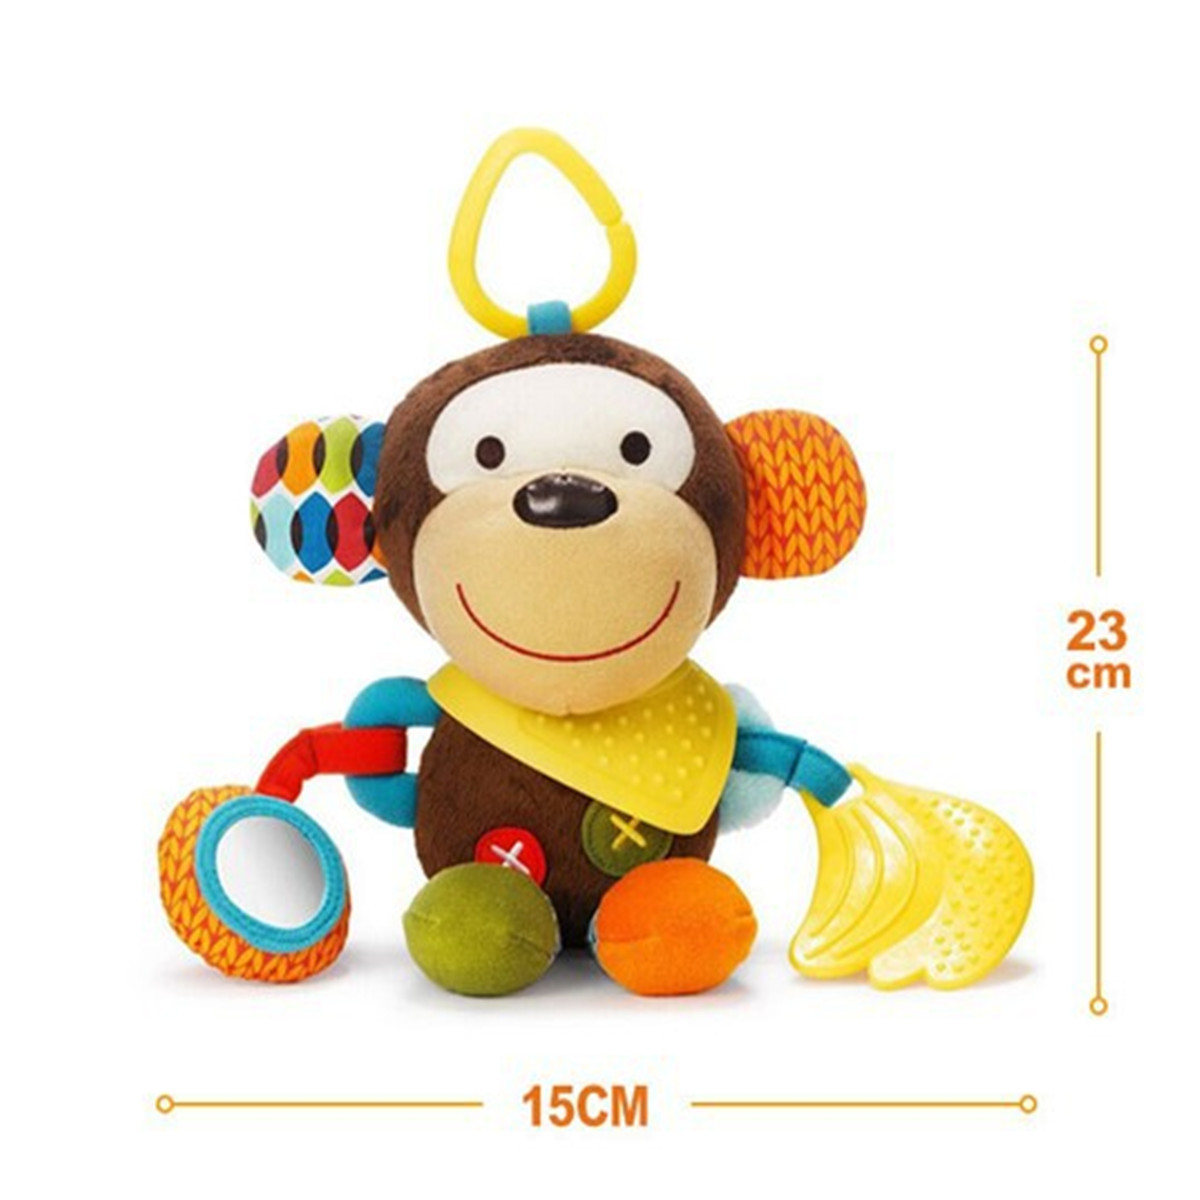 Baby Infant Teether Preferred Soft Appease Calm Toys Developmental Cute Doll